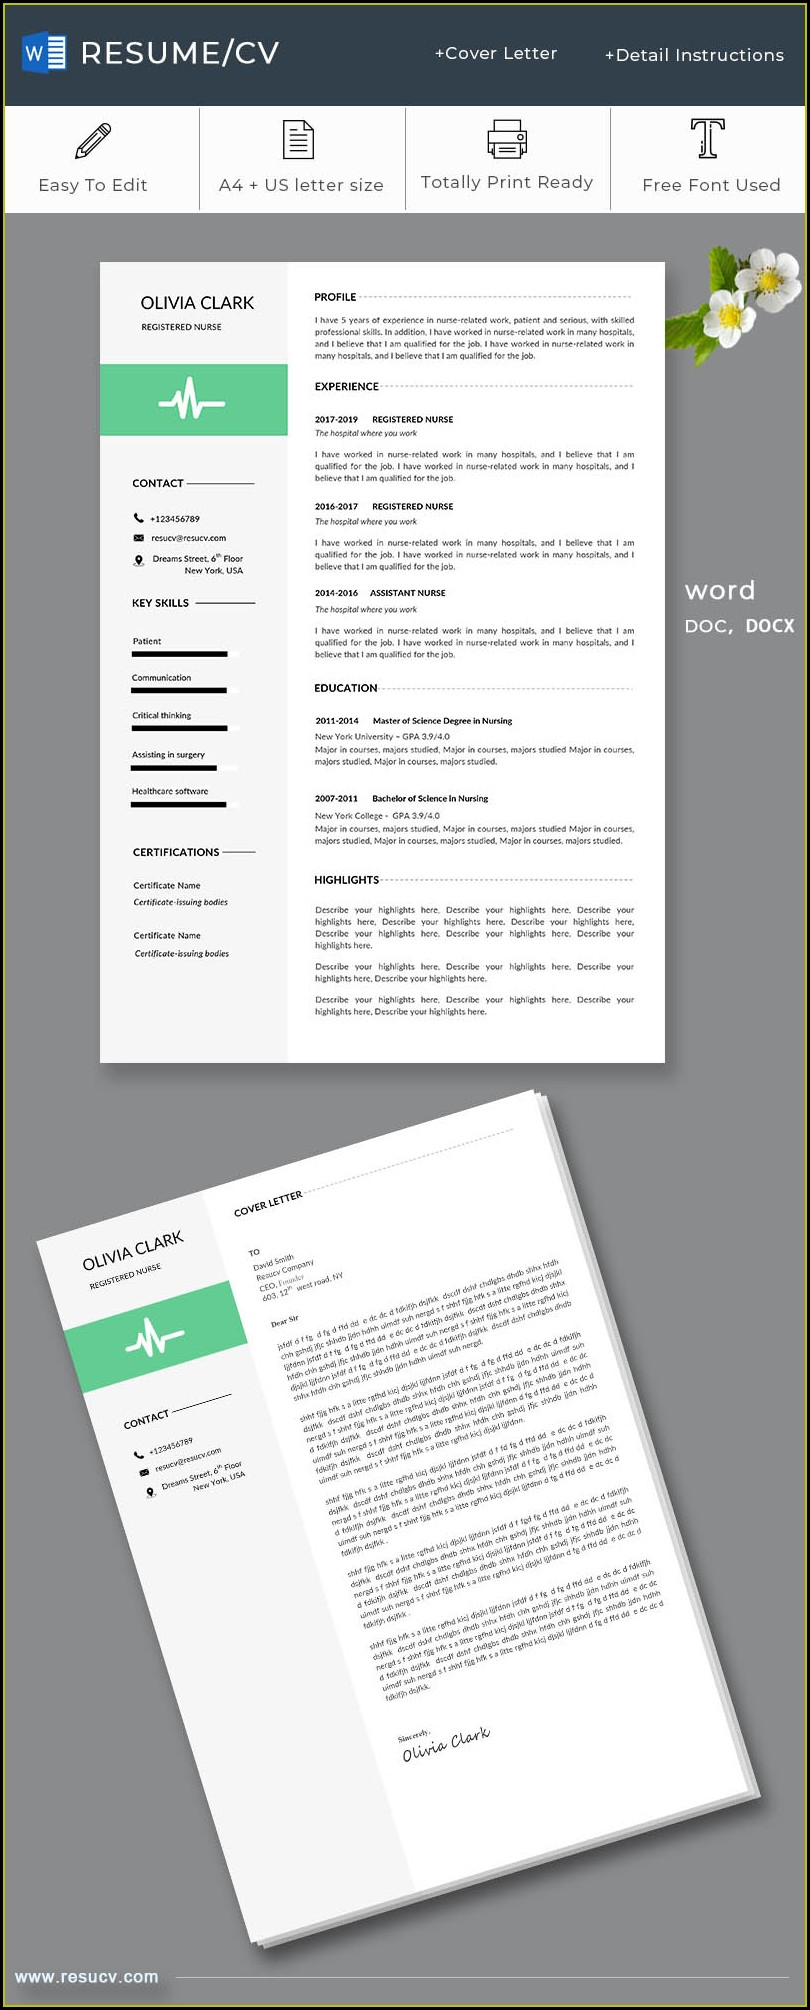 Registered Nurse Resume Cover Letter Template